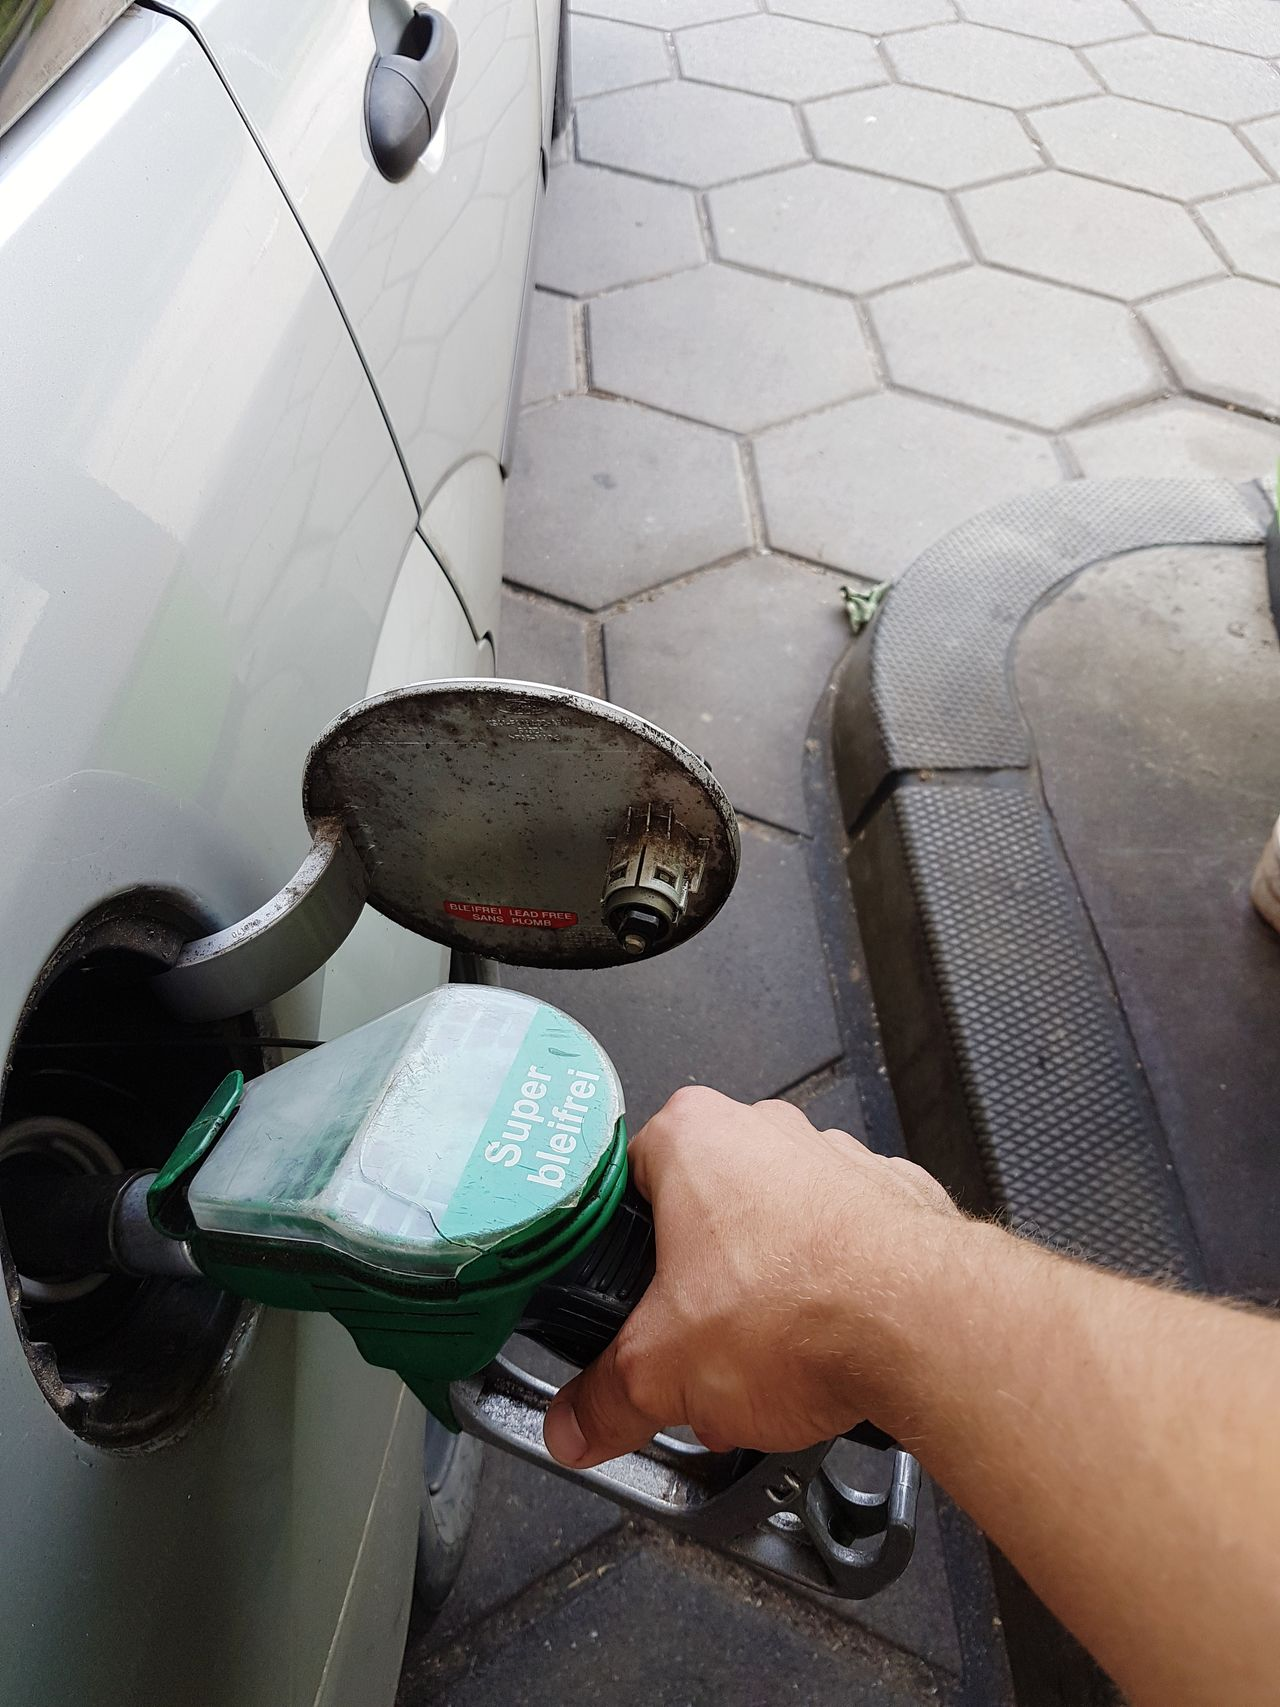 Human Body Part Human Hand Water One Person Spraying Drink High Angle View Wet Faucet Adults Only Alcohol People Holding Washing Adult Day Close-up Indoors  Only Women One Woman Only EyeEm Selects Gas Station Gas